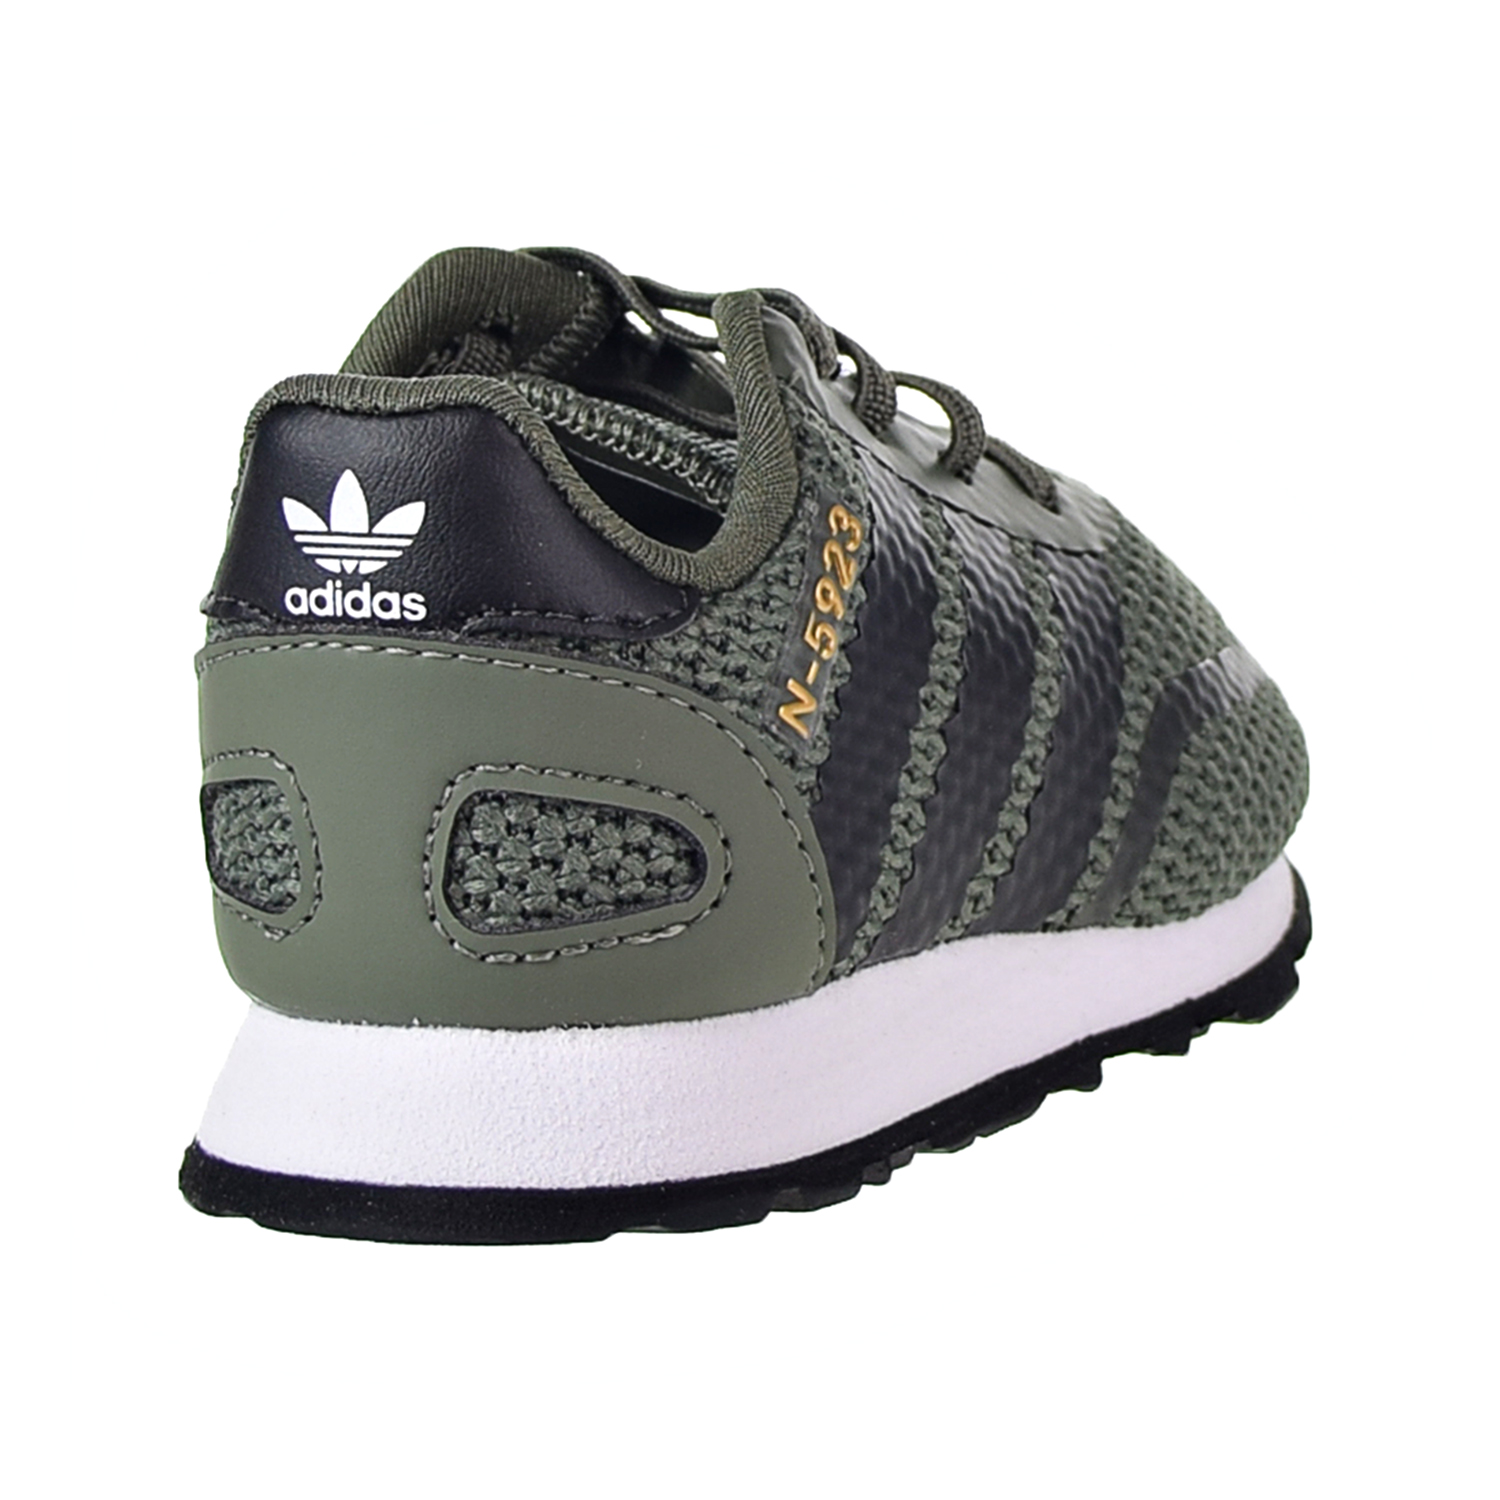 Details about Adidas N 5923 EL I Toddler's Base Green Core Black Footwear White B37154